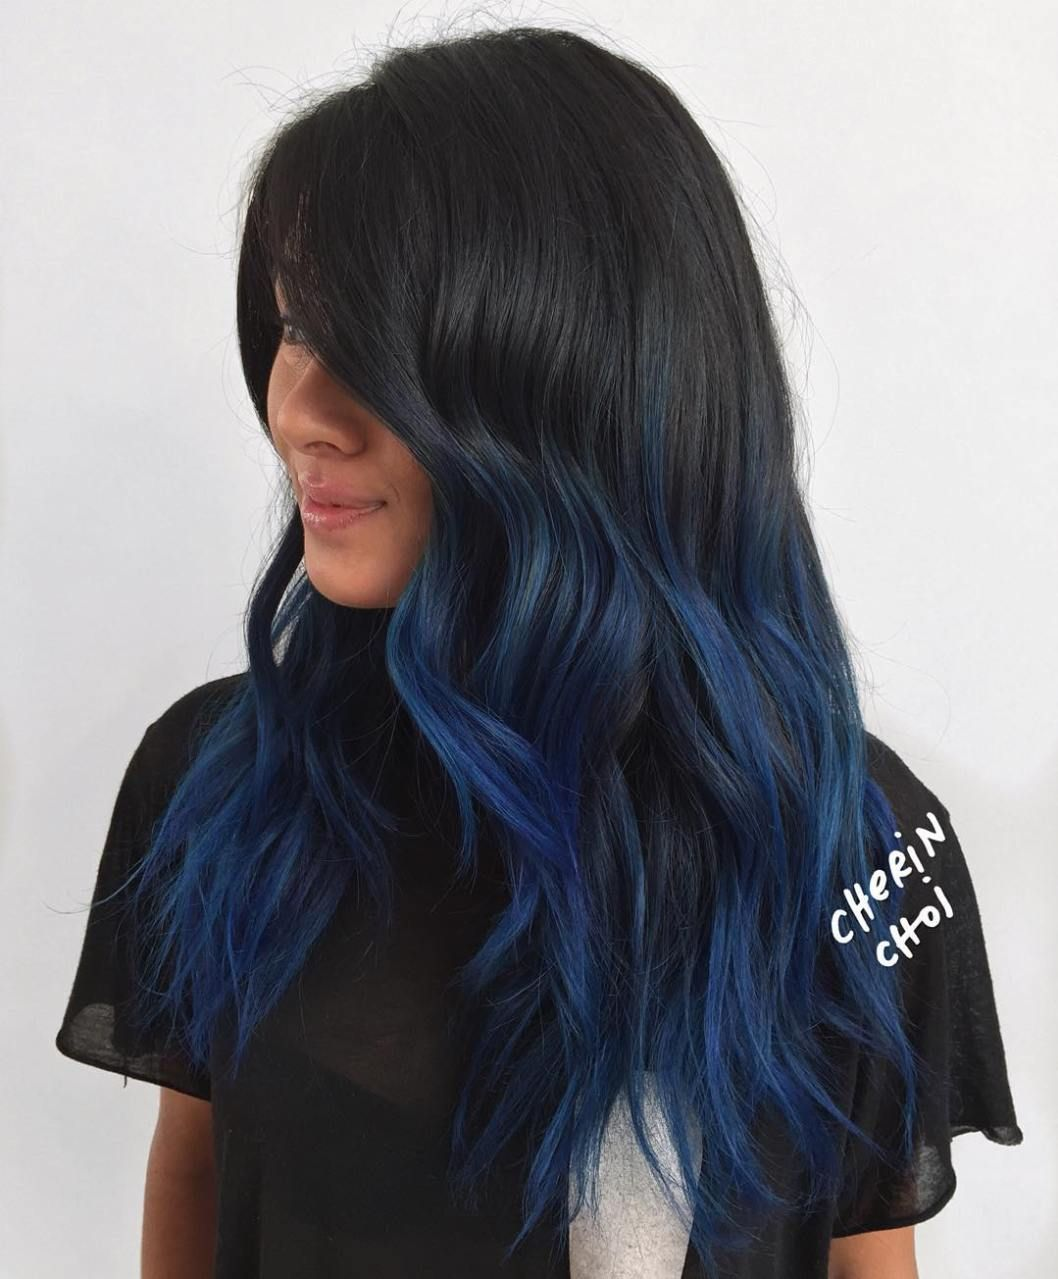 40 Fairy Like Blue Ombre Hairstyles Hair Styles Blue Ombre Hair Ombre Hair Color